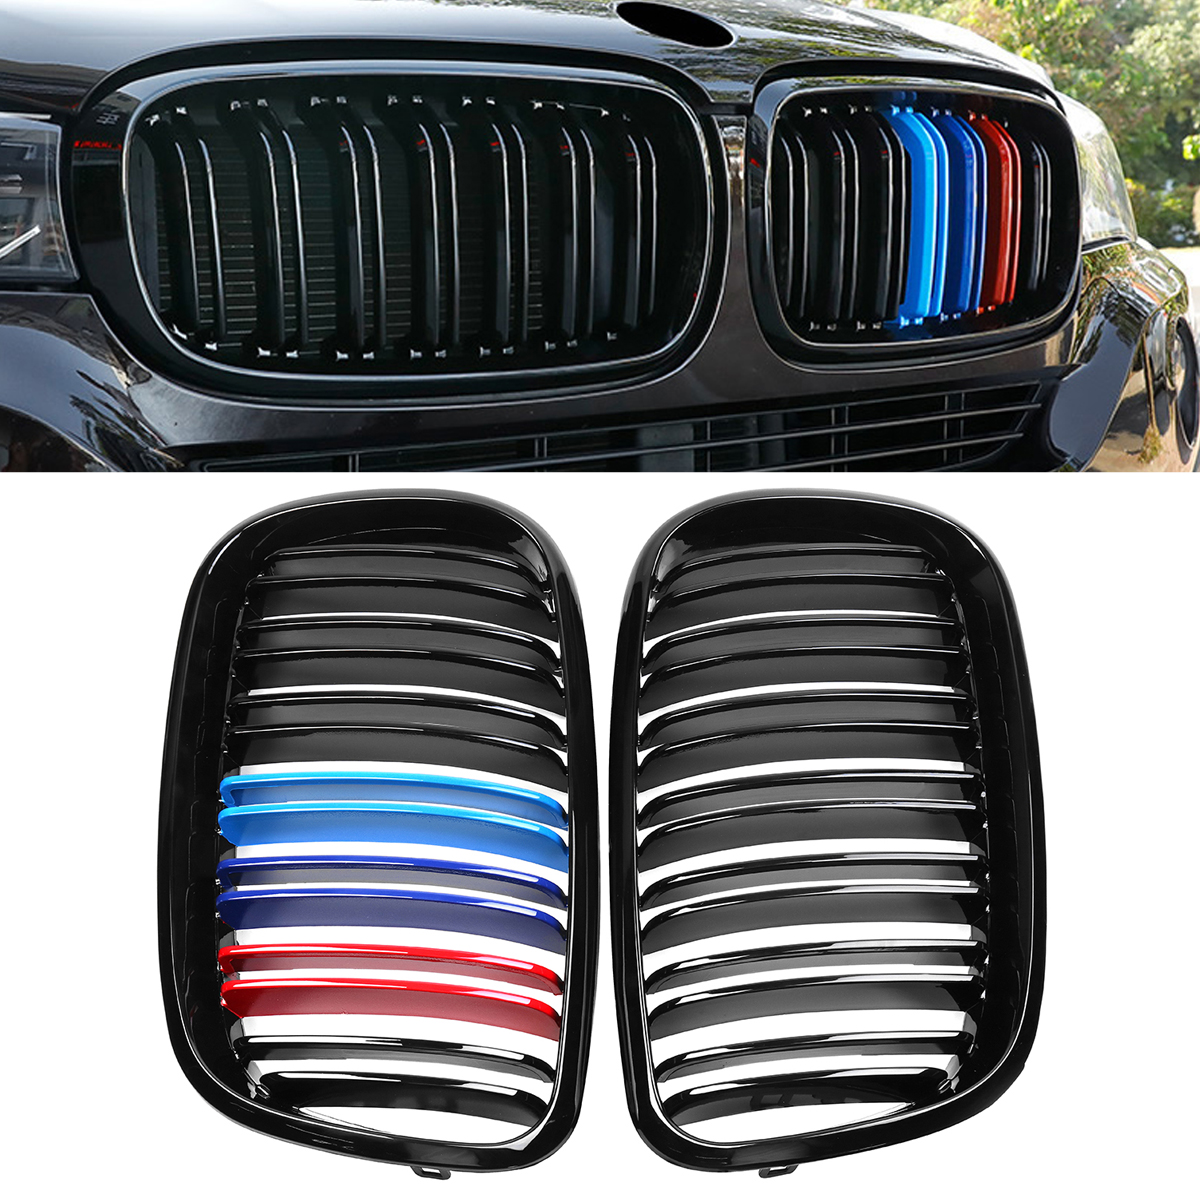 1 Pair ABS Glossy Black M-Color Front Grille Grill Double Slat Kidney for BMW X5 X6 E70 E71 2007-2013 2007 2013 kidney shape matte black abs plastic e70 e71 original style x5 x6 front racing grill grille for bmw e70 x5 bmw x6